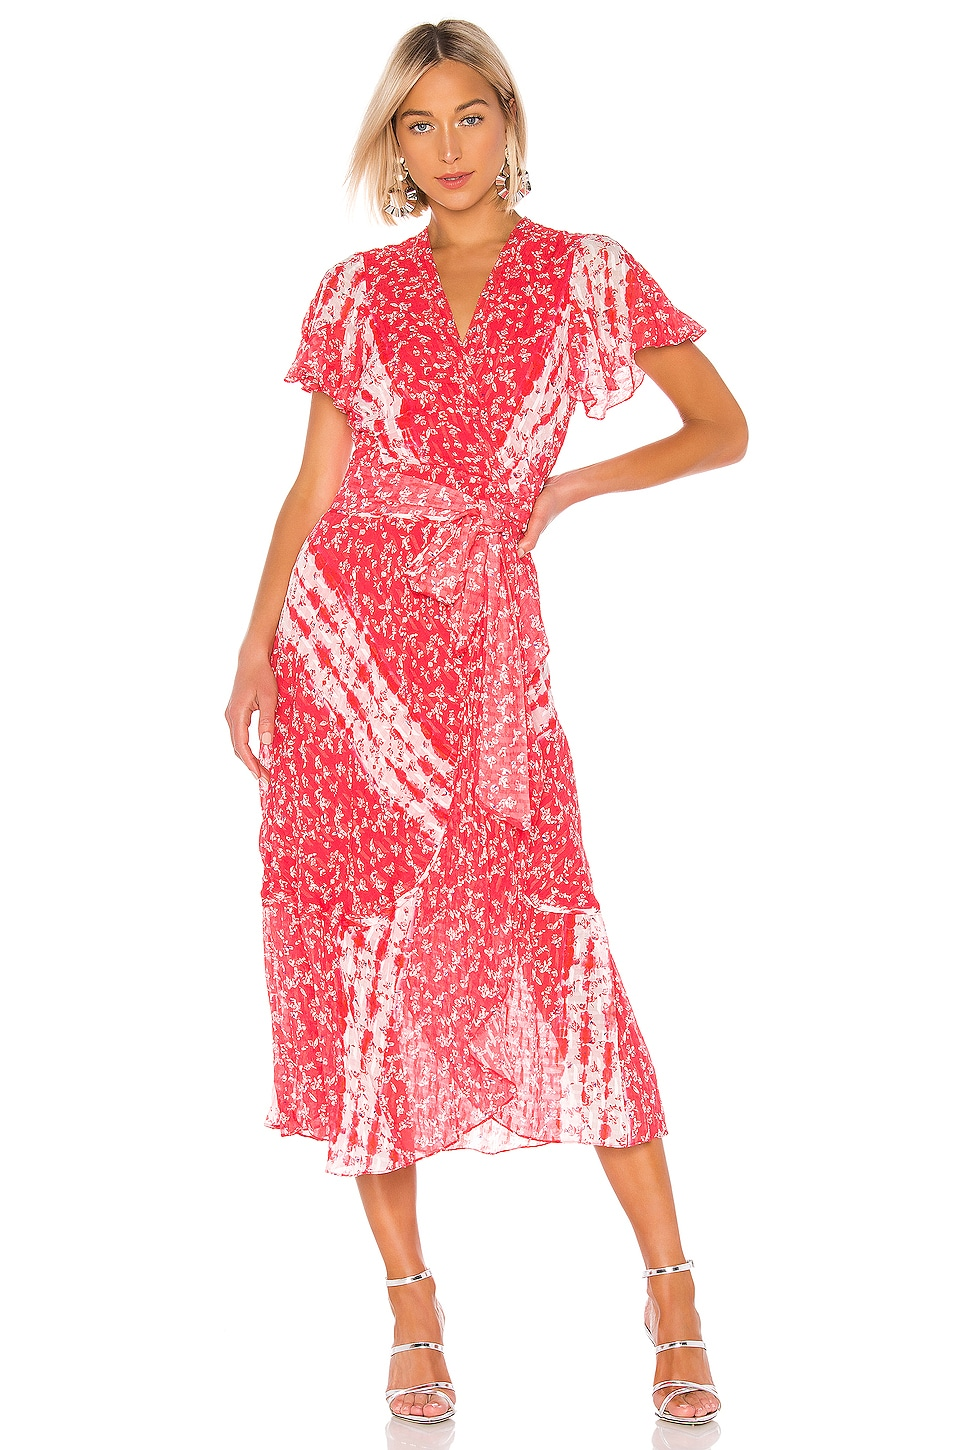 Tanya Taylor New Blaire Dress in Ditsy Floral Stripe Guava